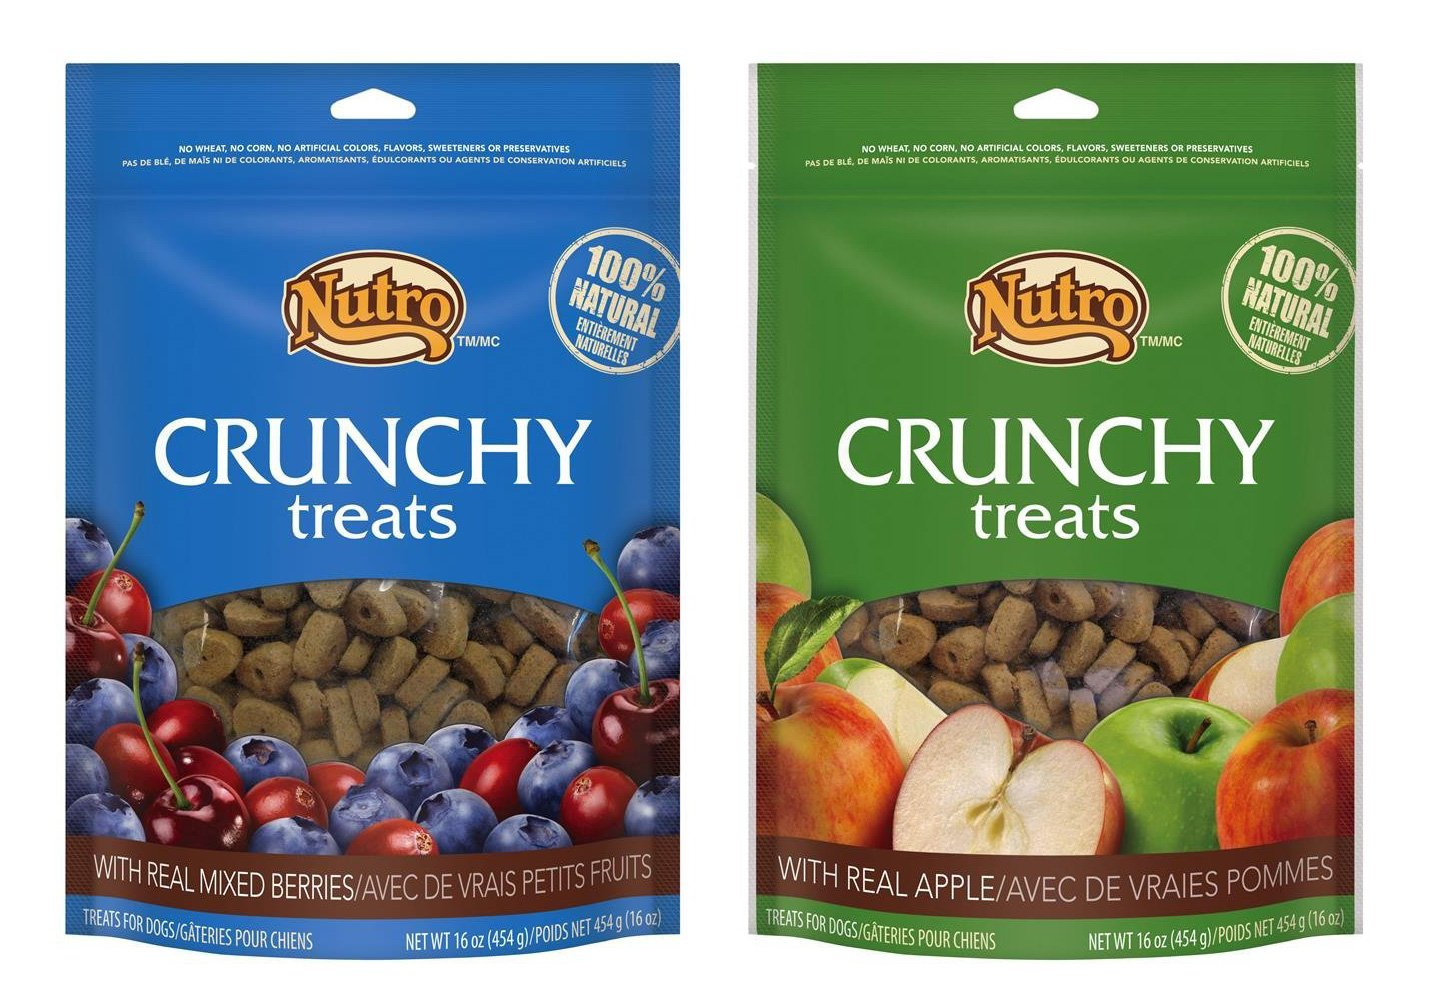 Nutro All Natural Crunchy Training Treats for Dogs 2 Flavor Variety Bundle  (1) Mixed Berries, and (1) Apple, 16 Oz. Ea. (2 Bags Total)